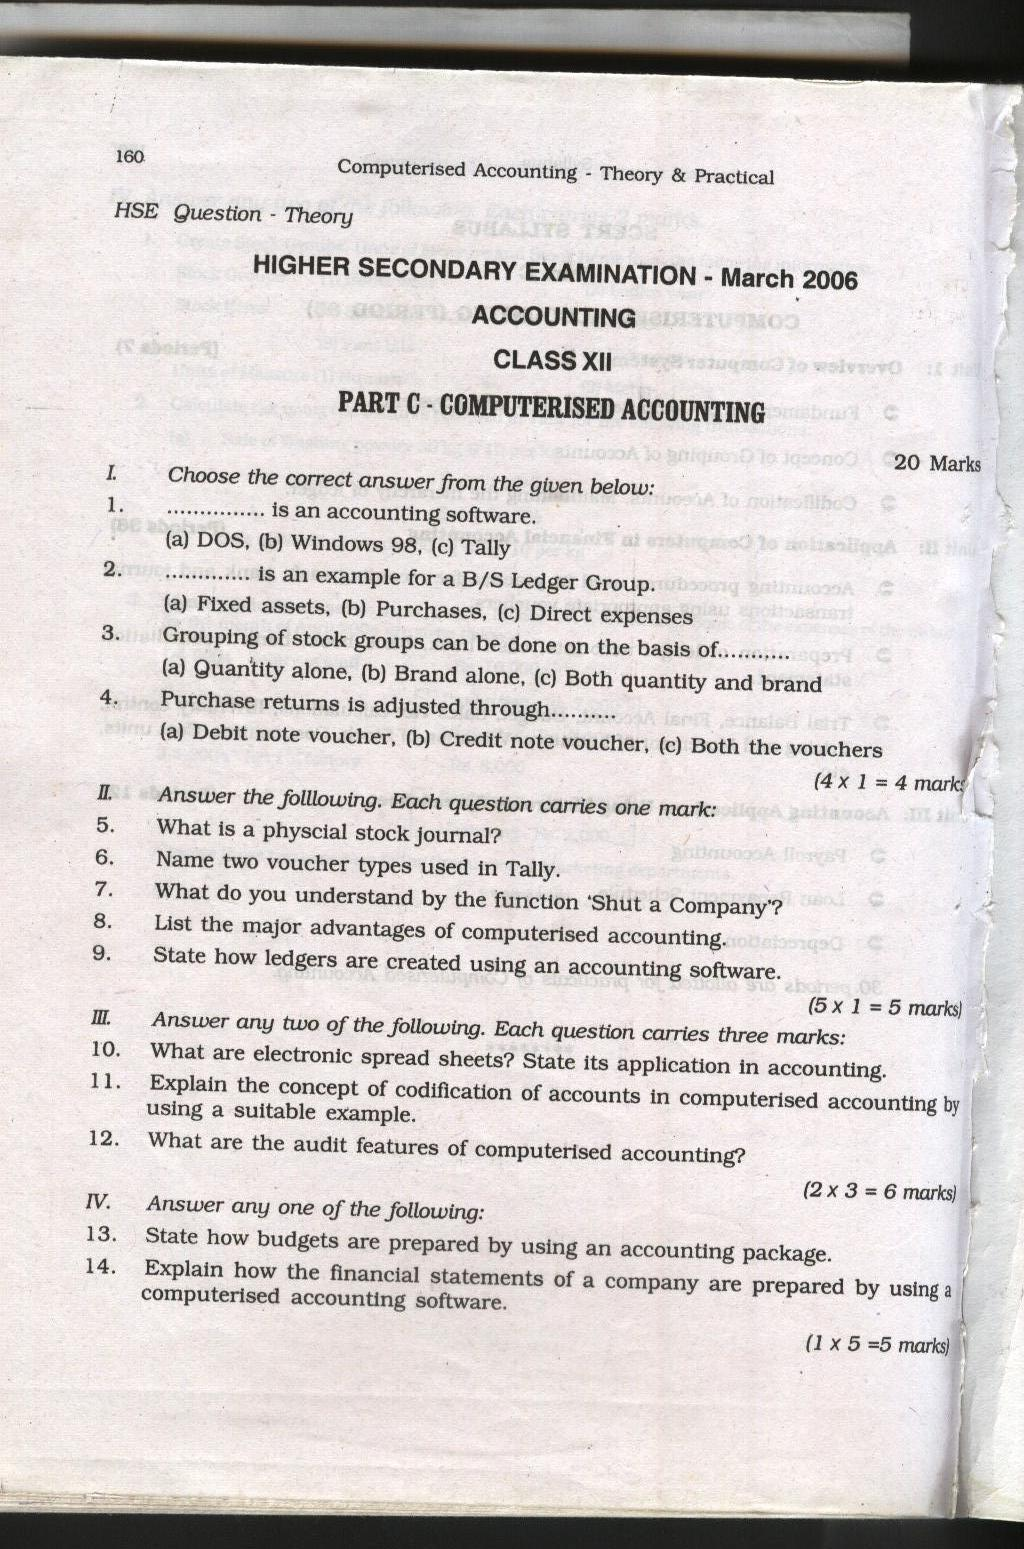 Kerala State Computerised Accounting model question papers